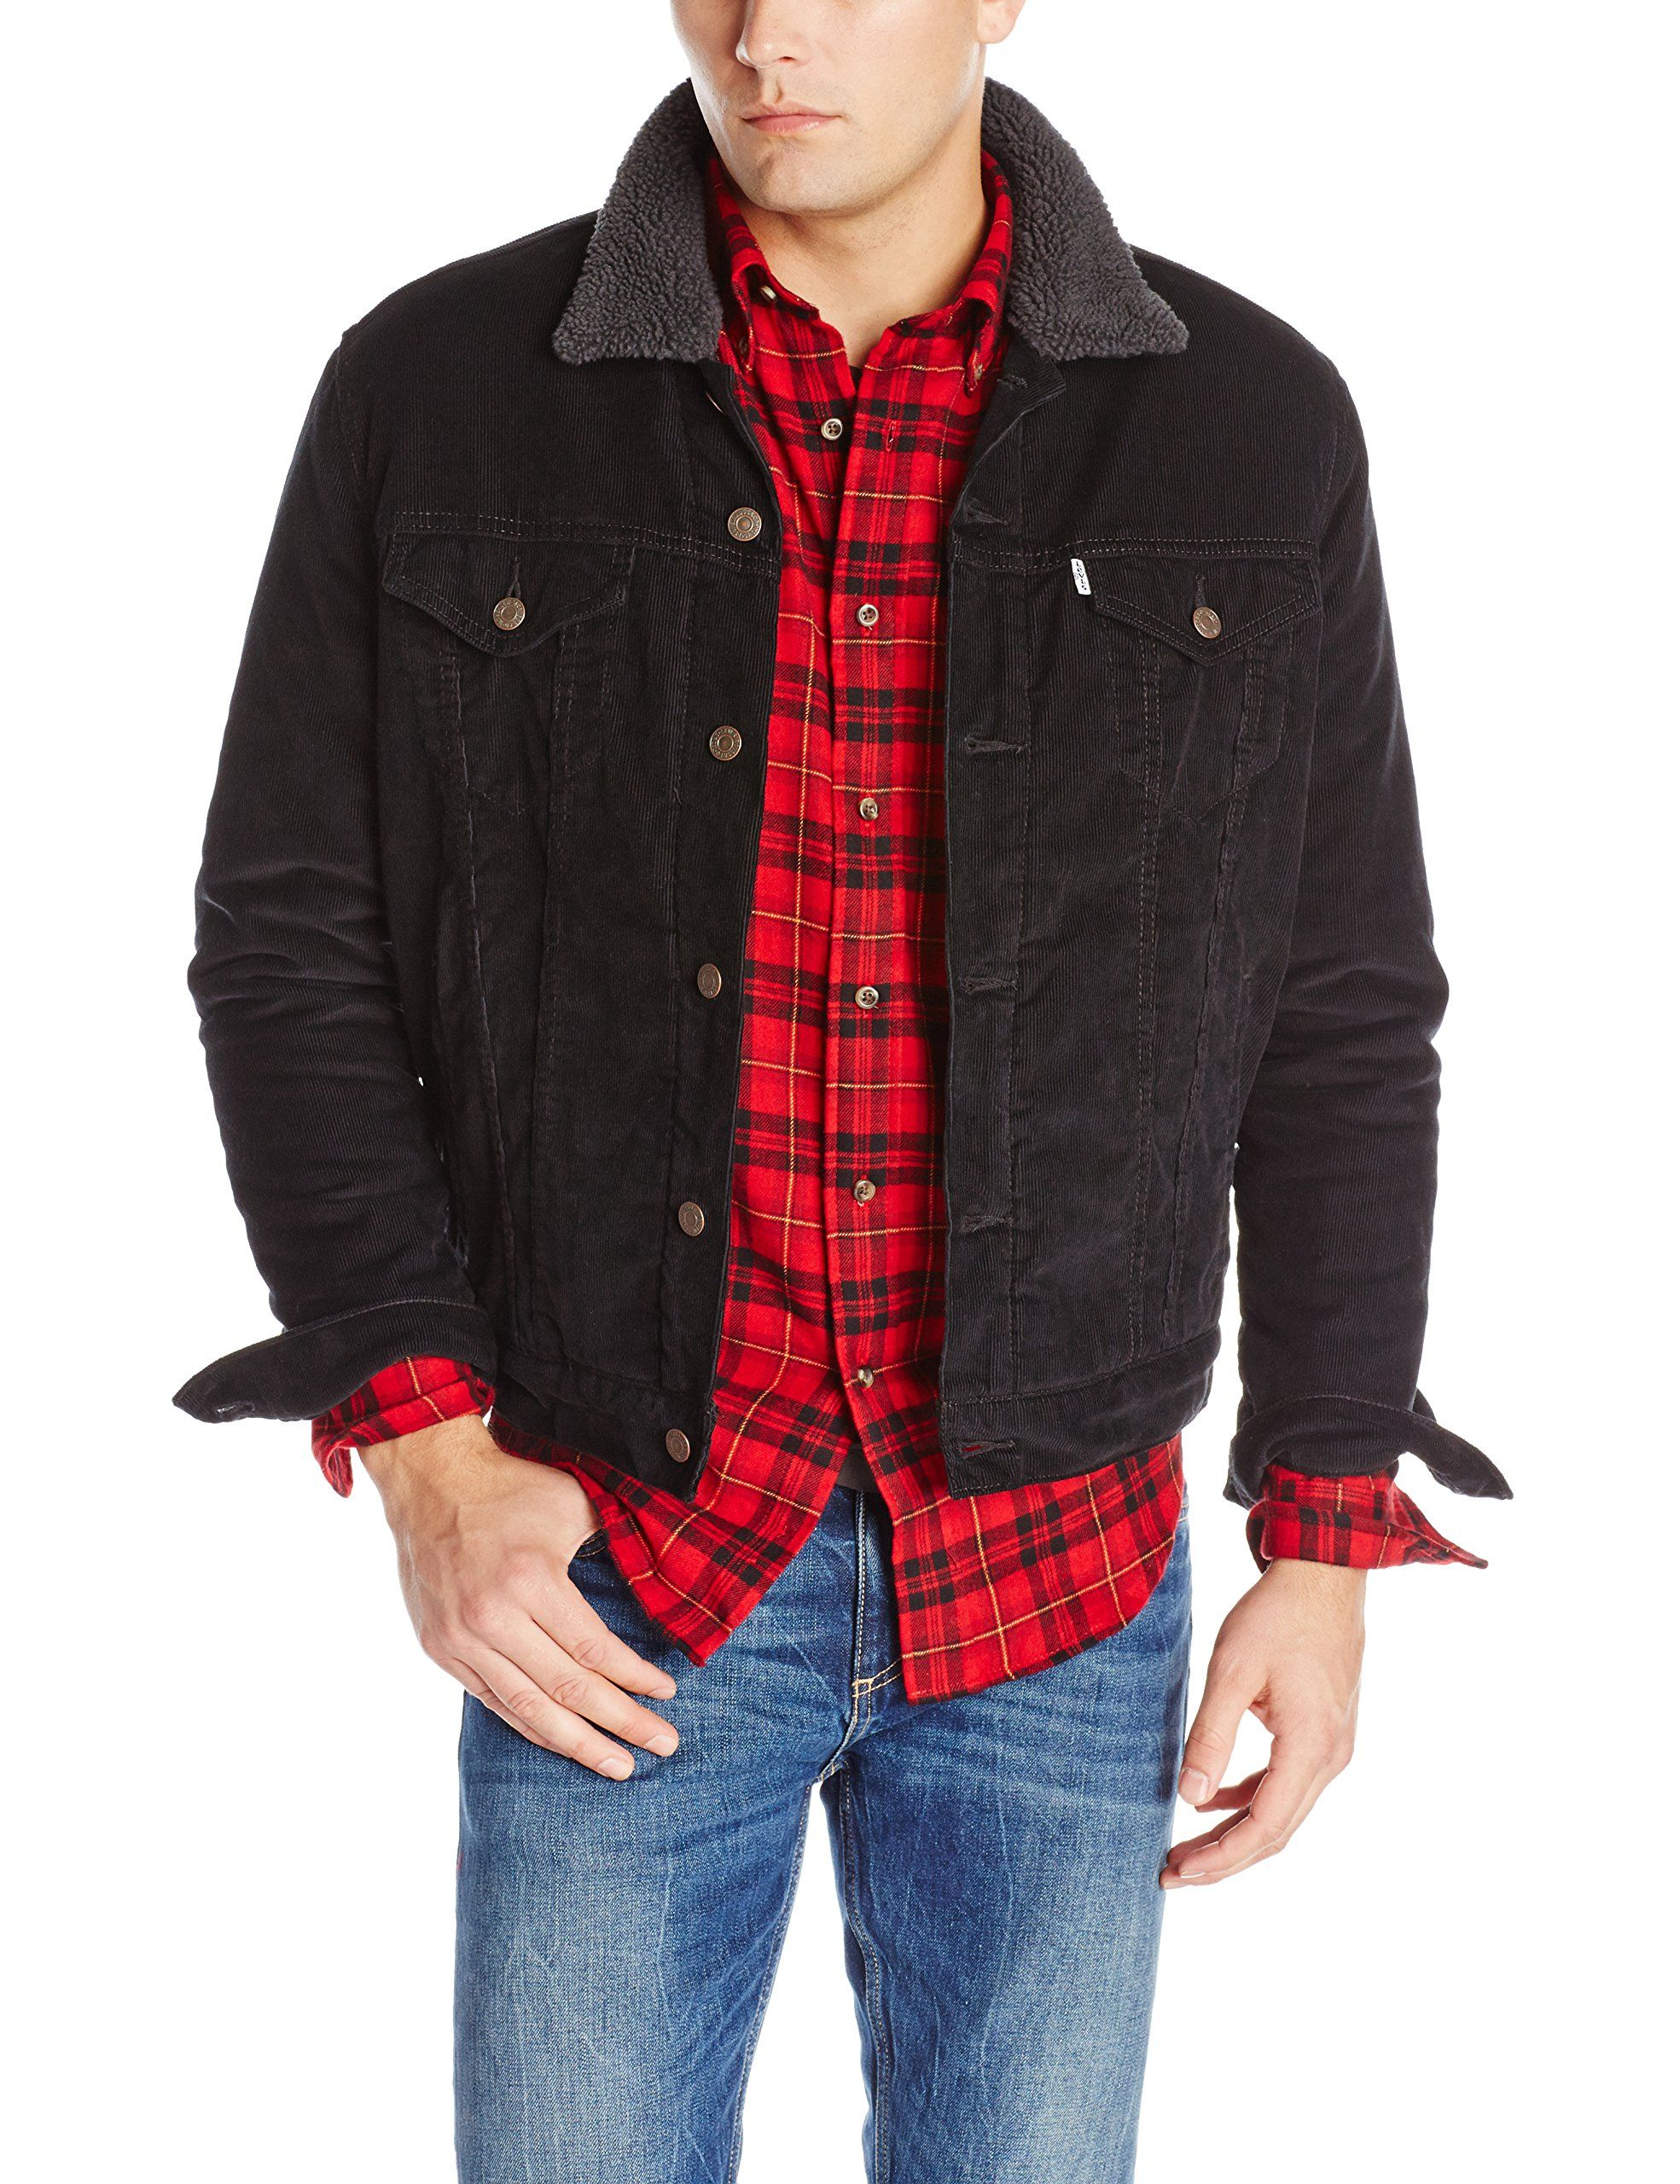 Levi's Men's Sherpa Trucker Jacket, Black Corduroy, X